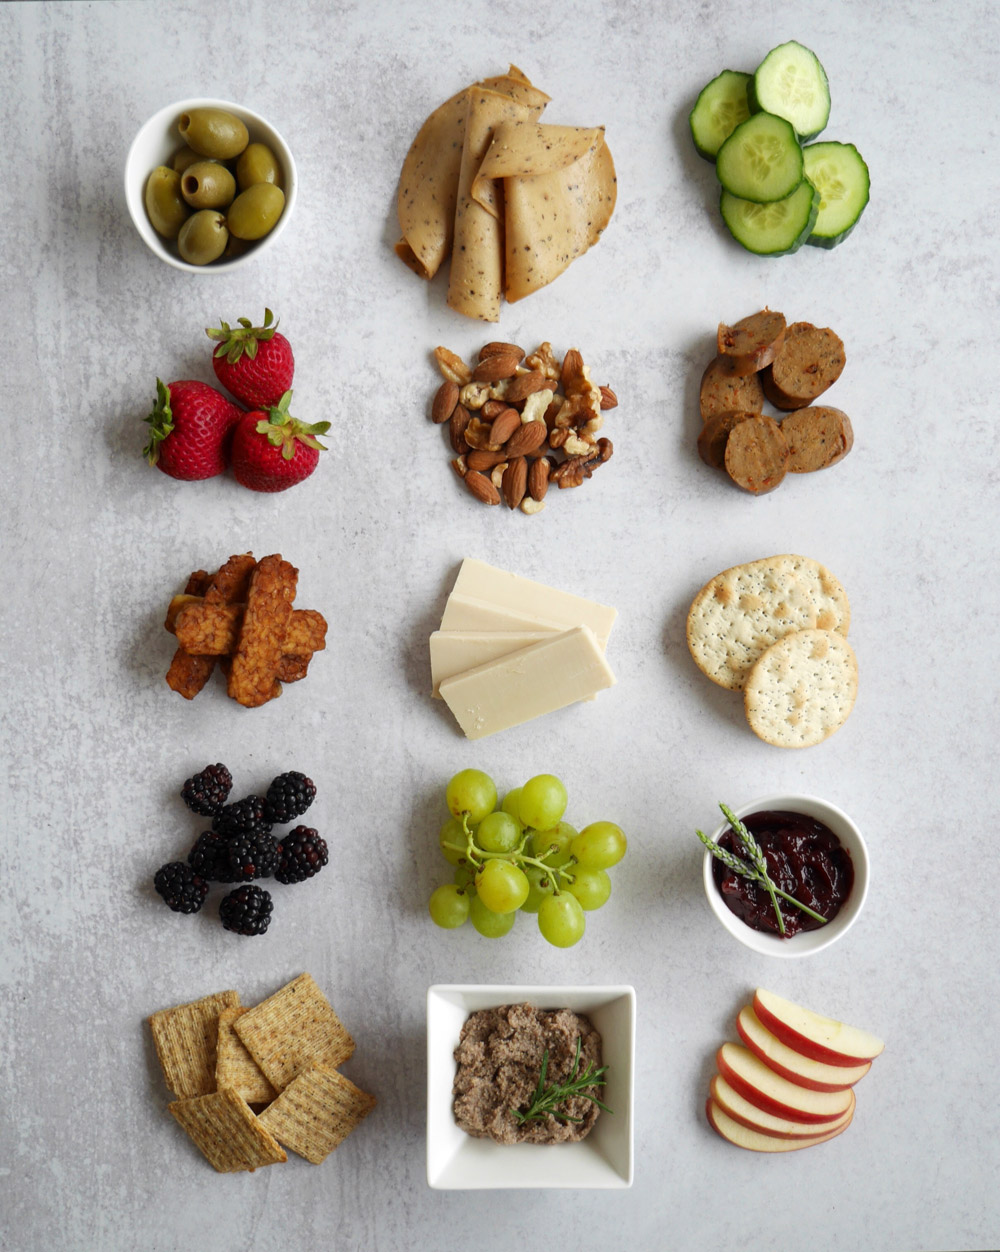 How To Make A Vegan Charcuterie Board, Ingredients and Ideas